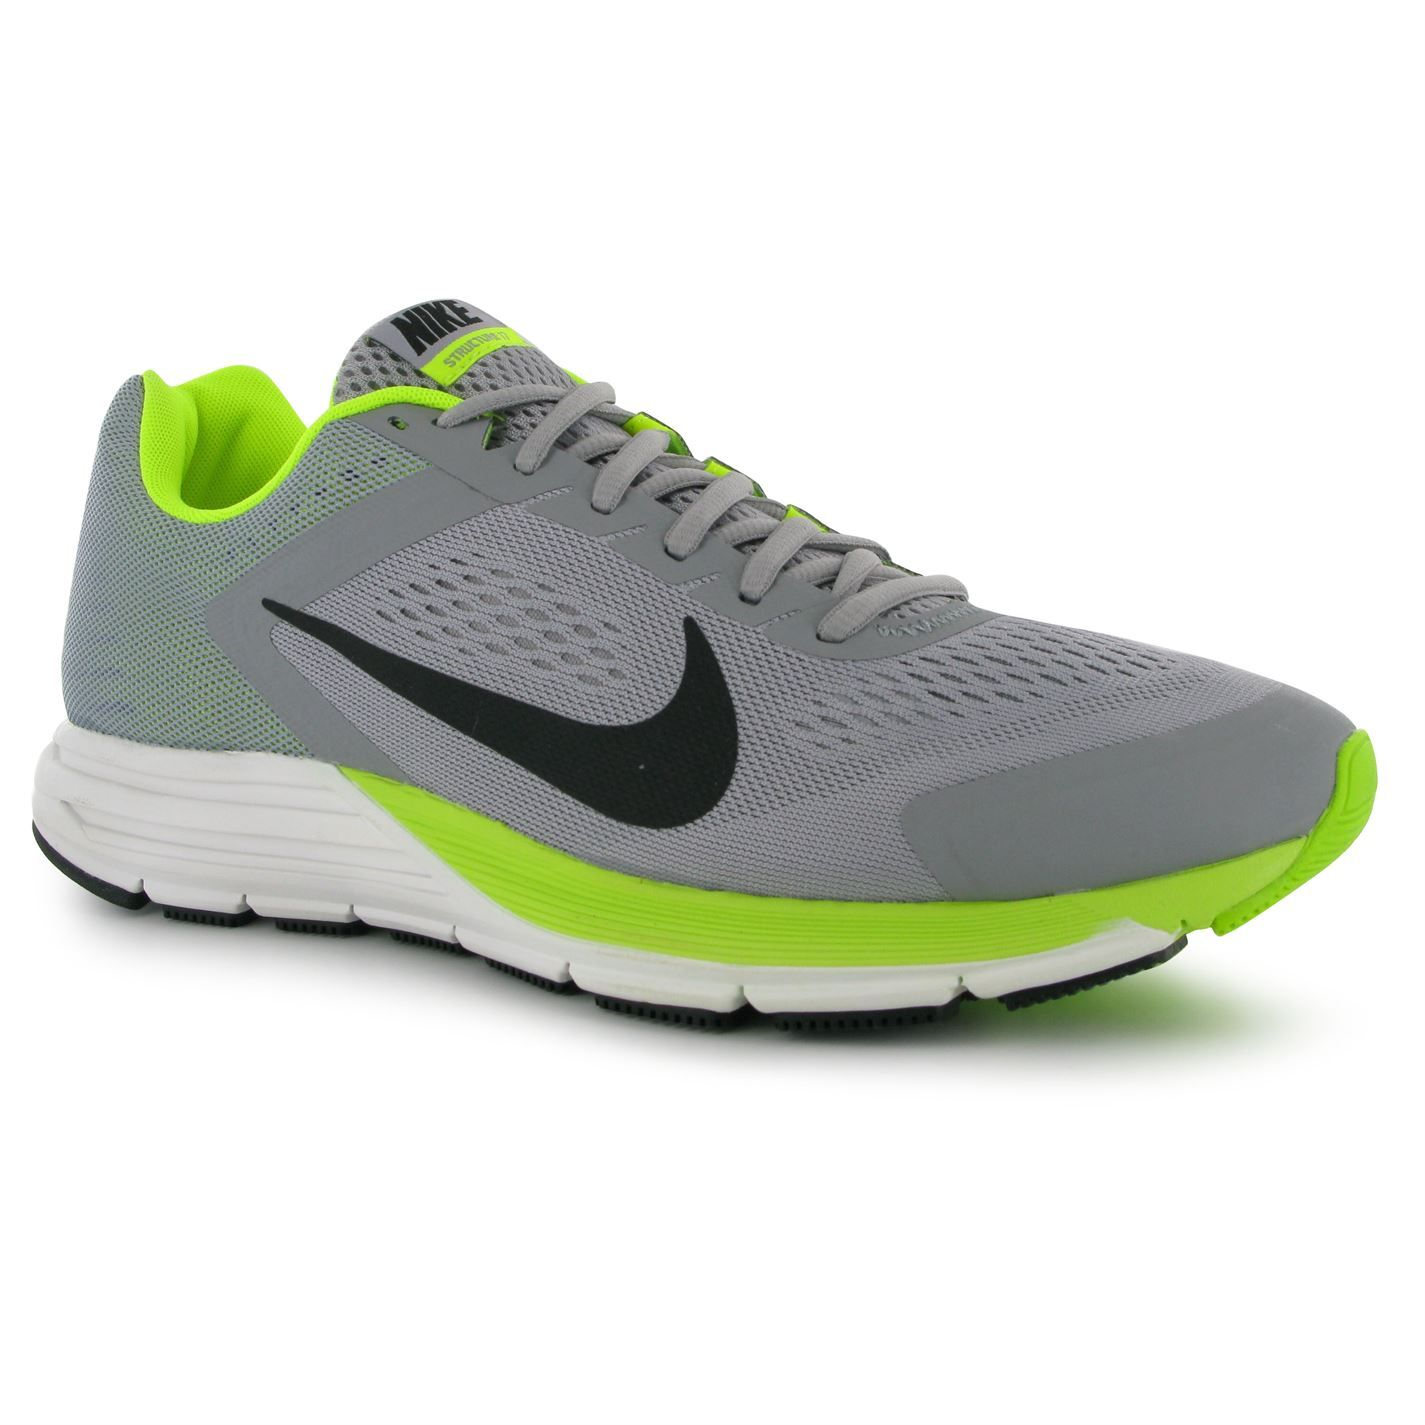 Nike Zoom Structure 17 Mens Running Shoes >> Now £66